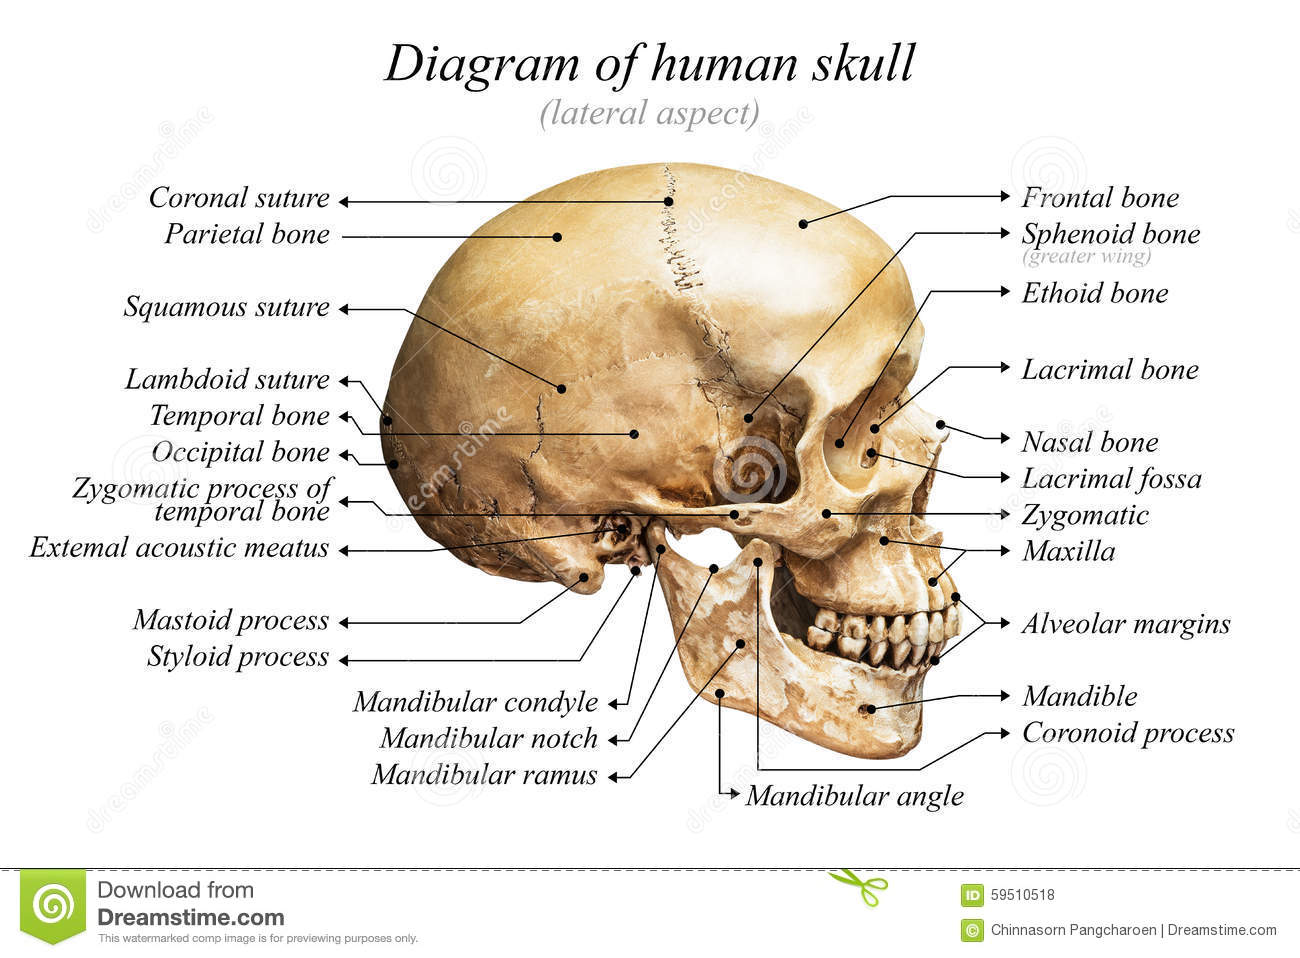 Lateral aspect of human skull diagram on white background for basic ...